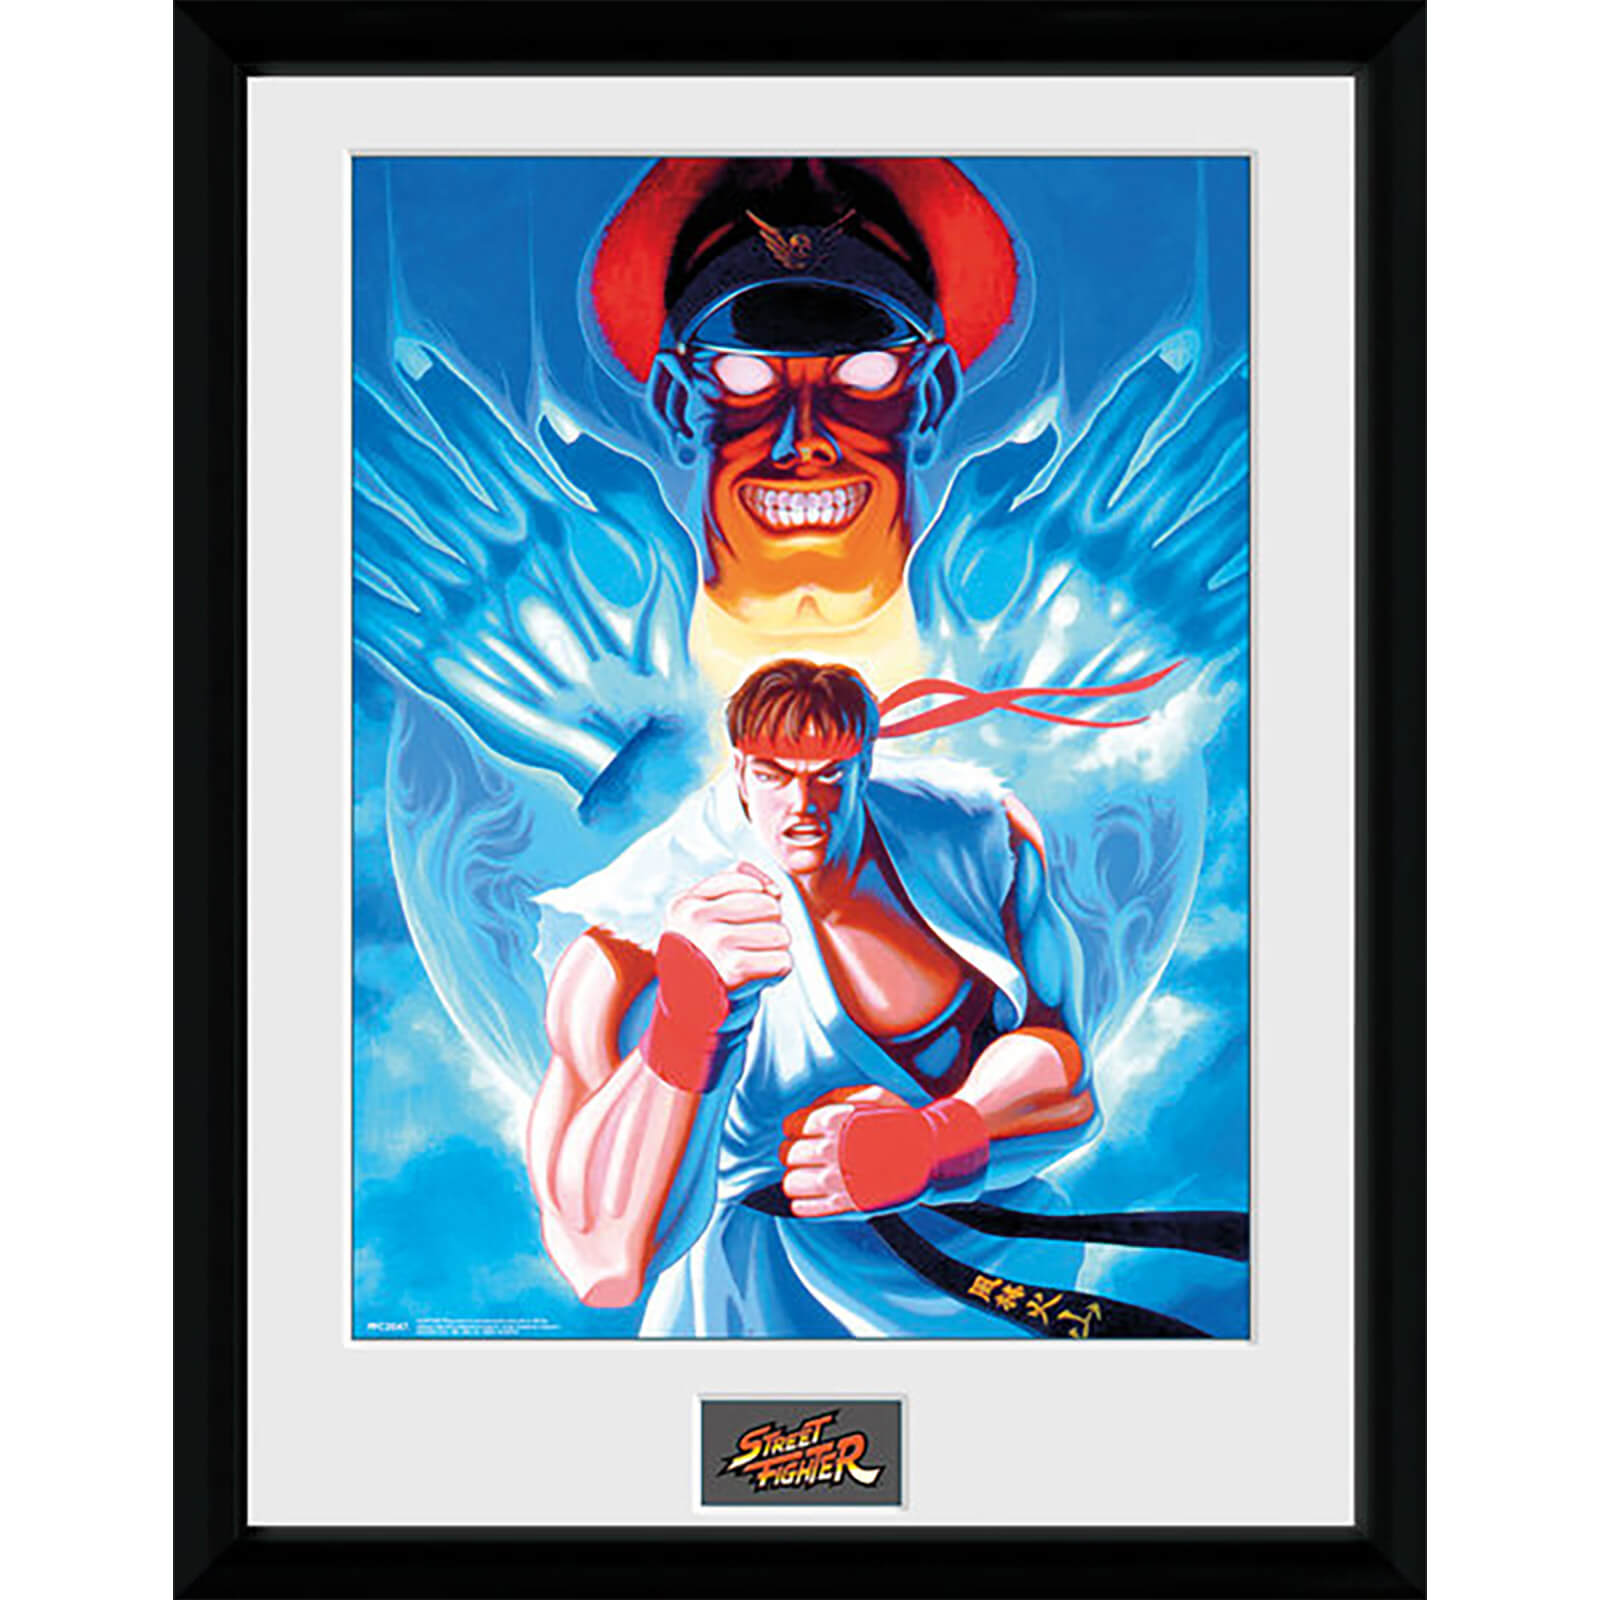 Street Fighter Ryu and Bison - 16 x 12 Inches Framed Photographic